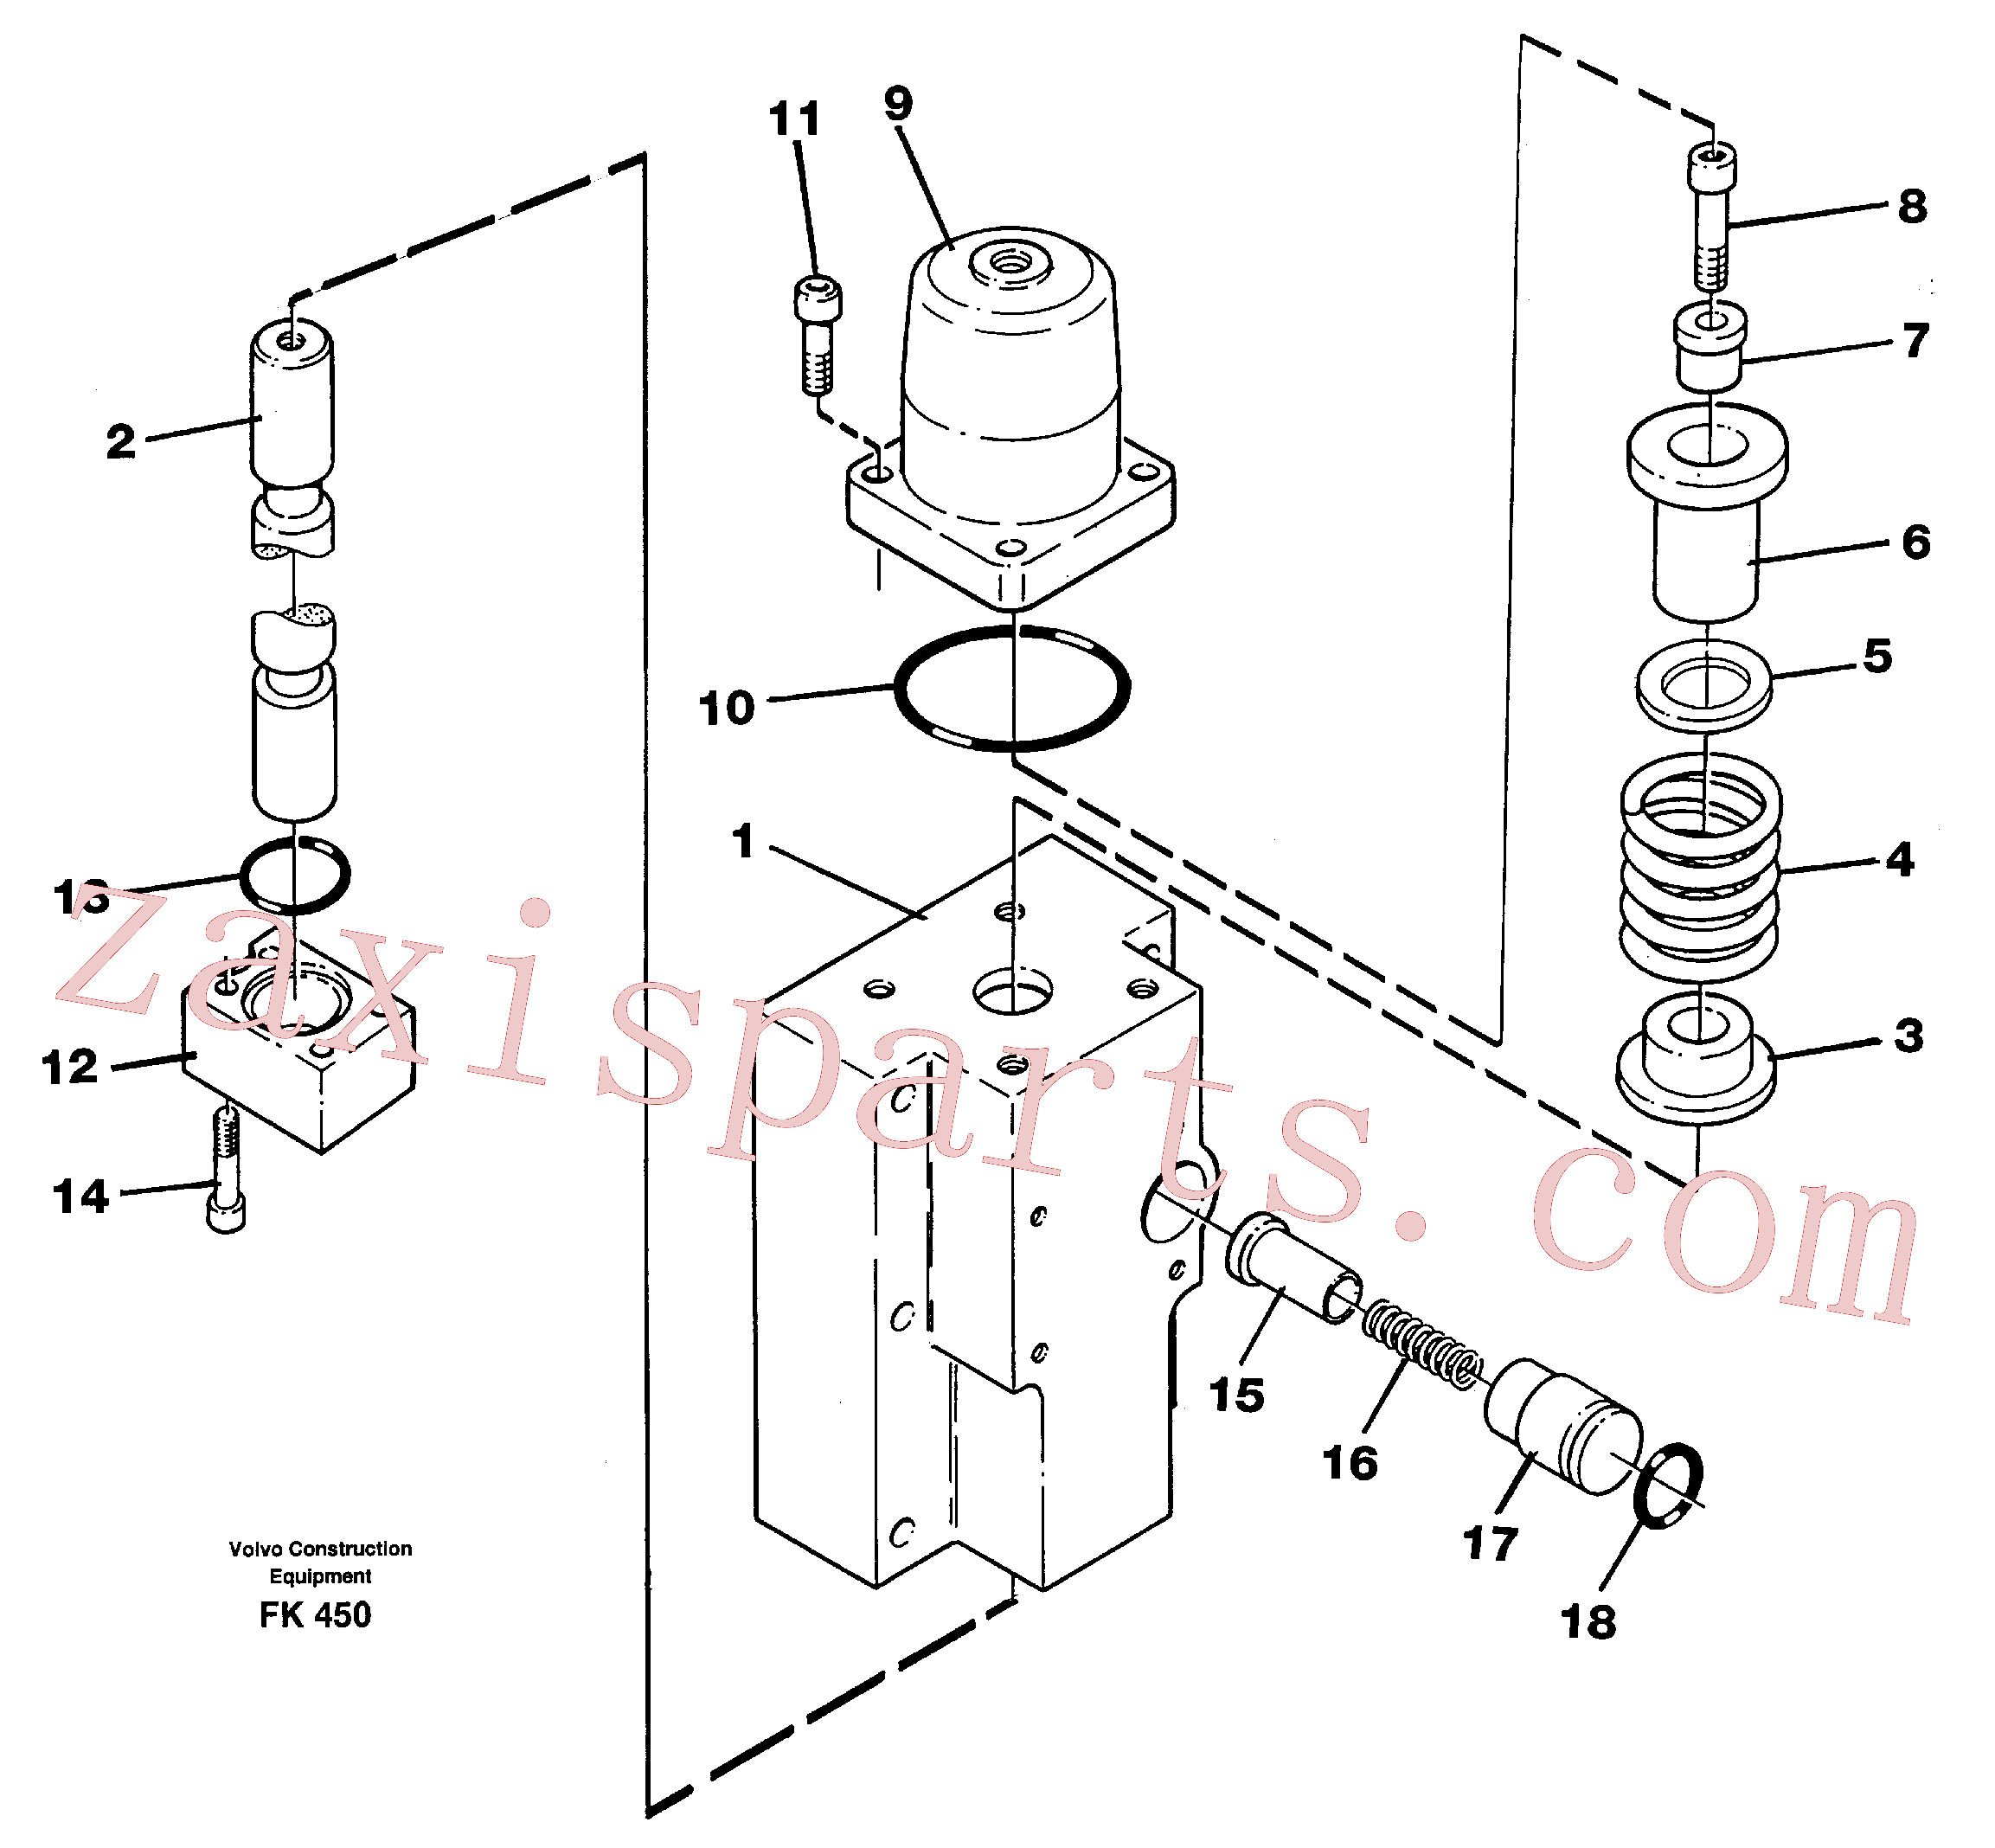 VOE14250509 for Volvo Four-way valve(FK450 assembly)